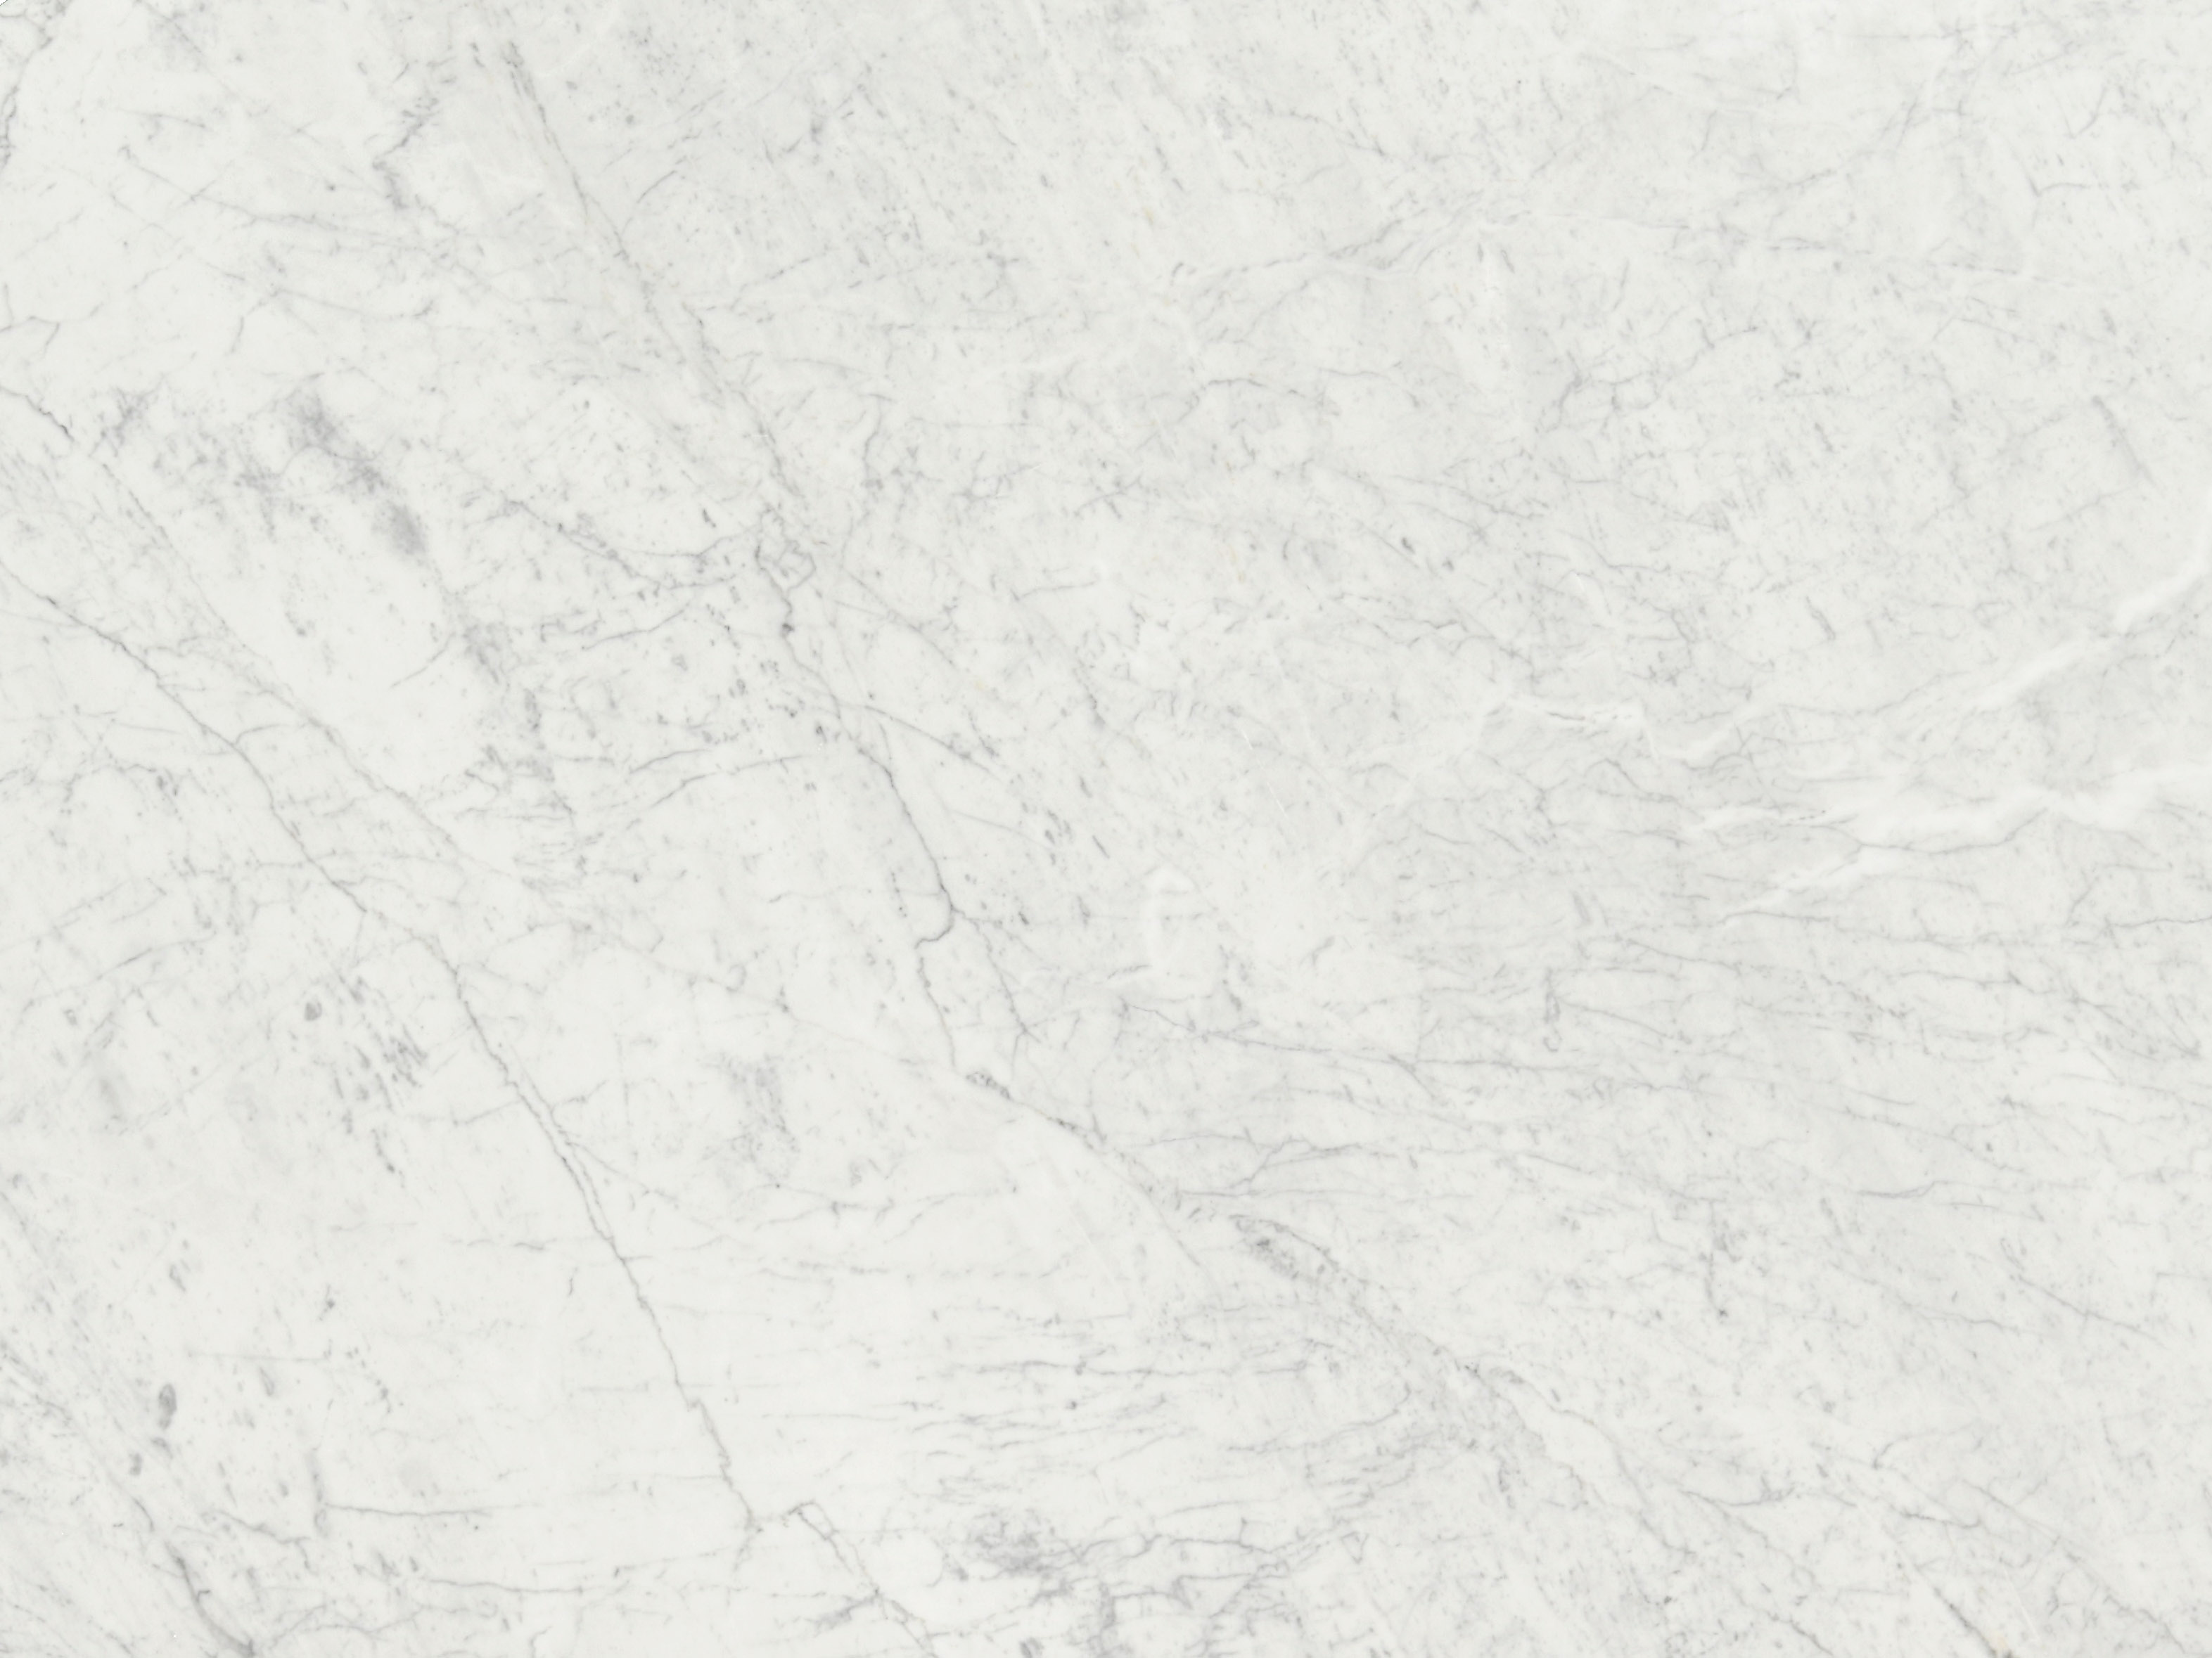 View of Marble - Statuario Premium 3cm